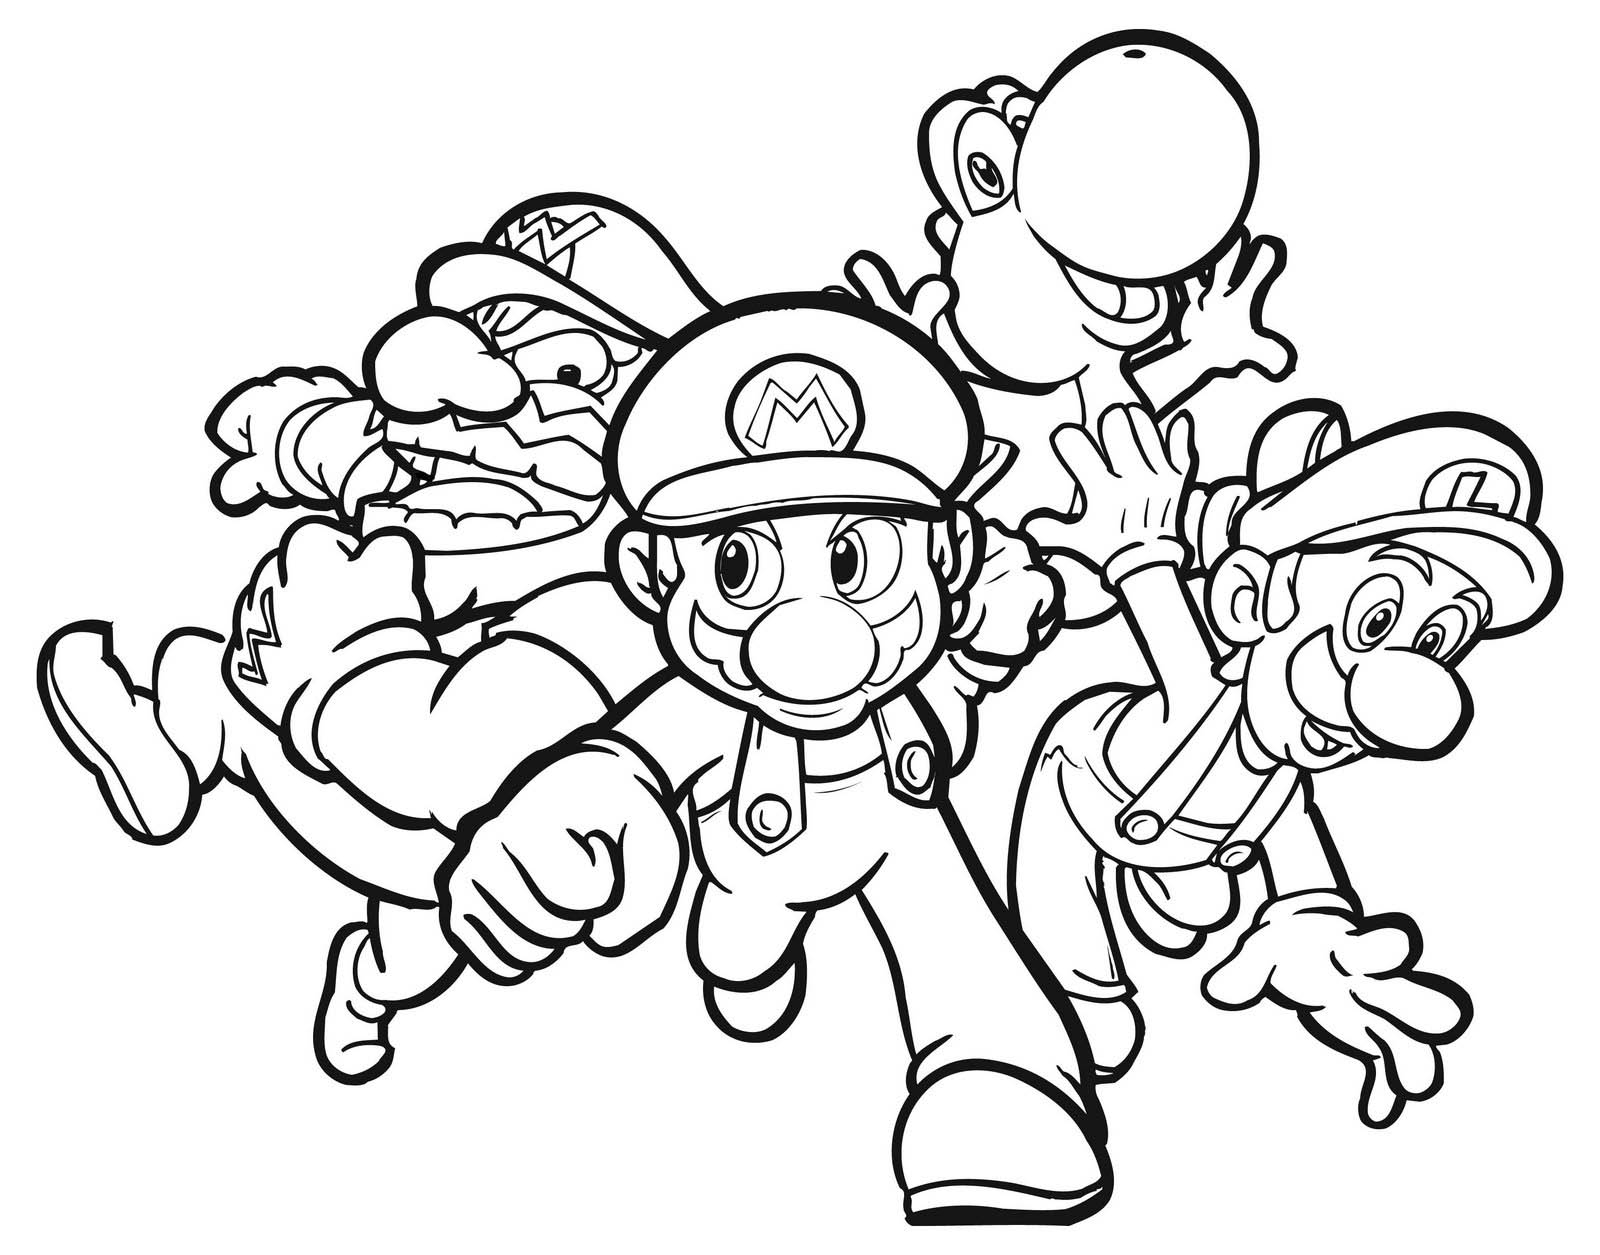 mario coloring pages - super mario coloring pages